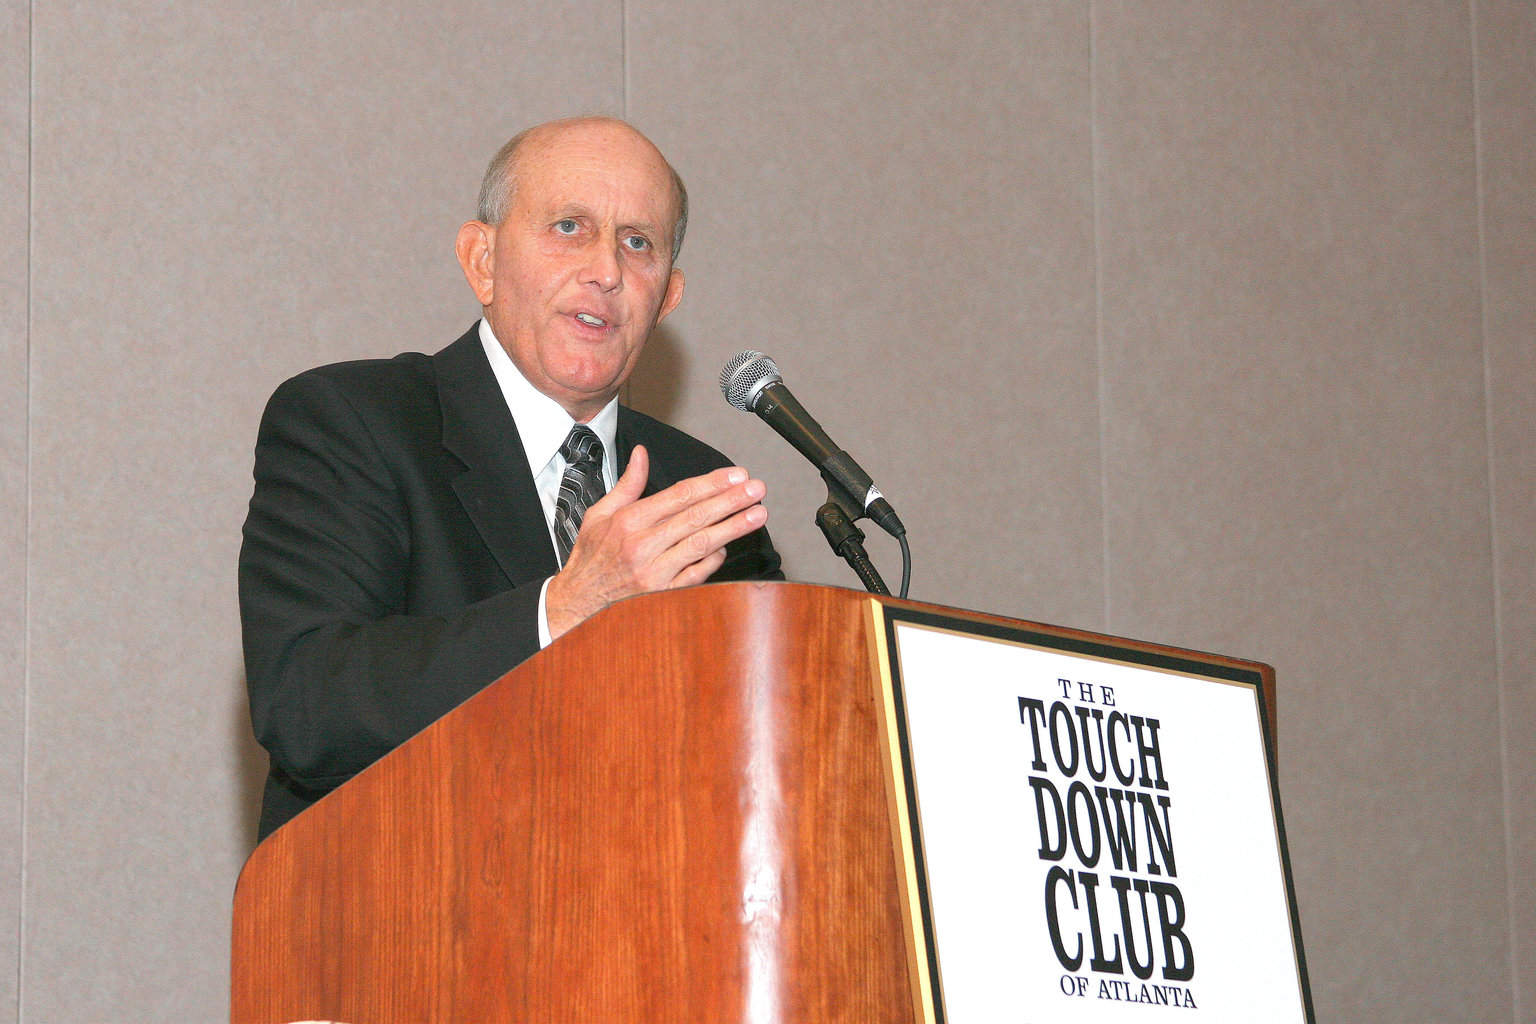 10-4-04 Larry Coker at podium